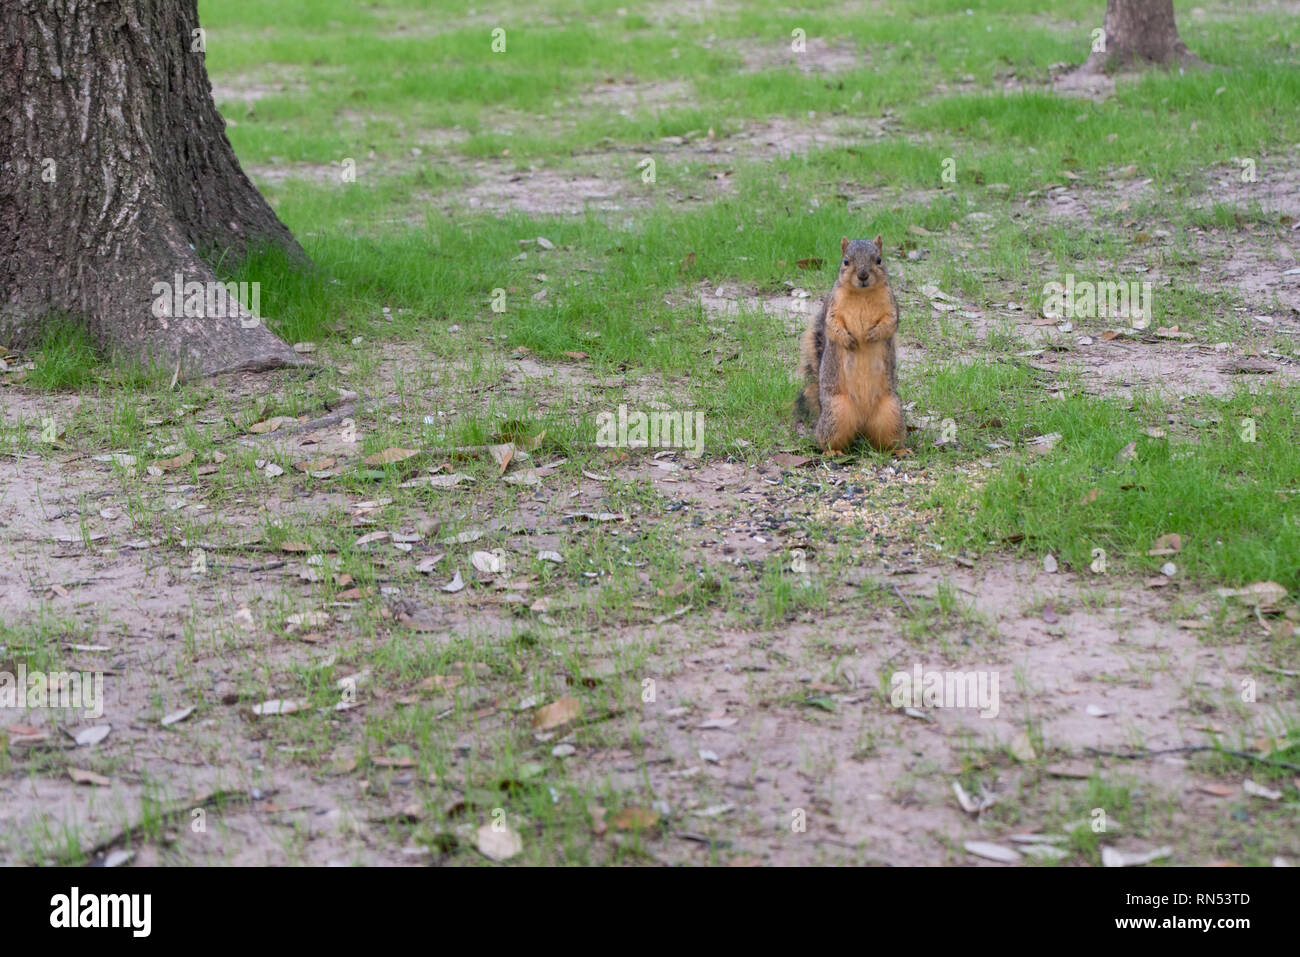 Small Squirel Standing on Two Feet and Looking Towards the Camera Stock Photo